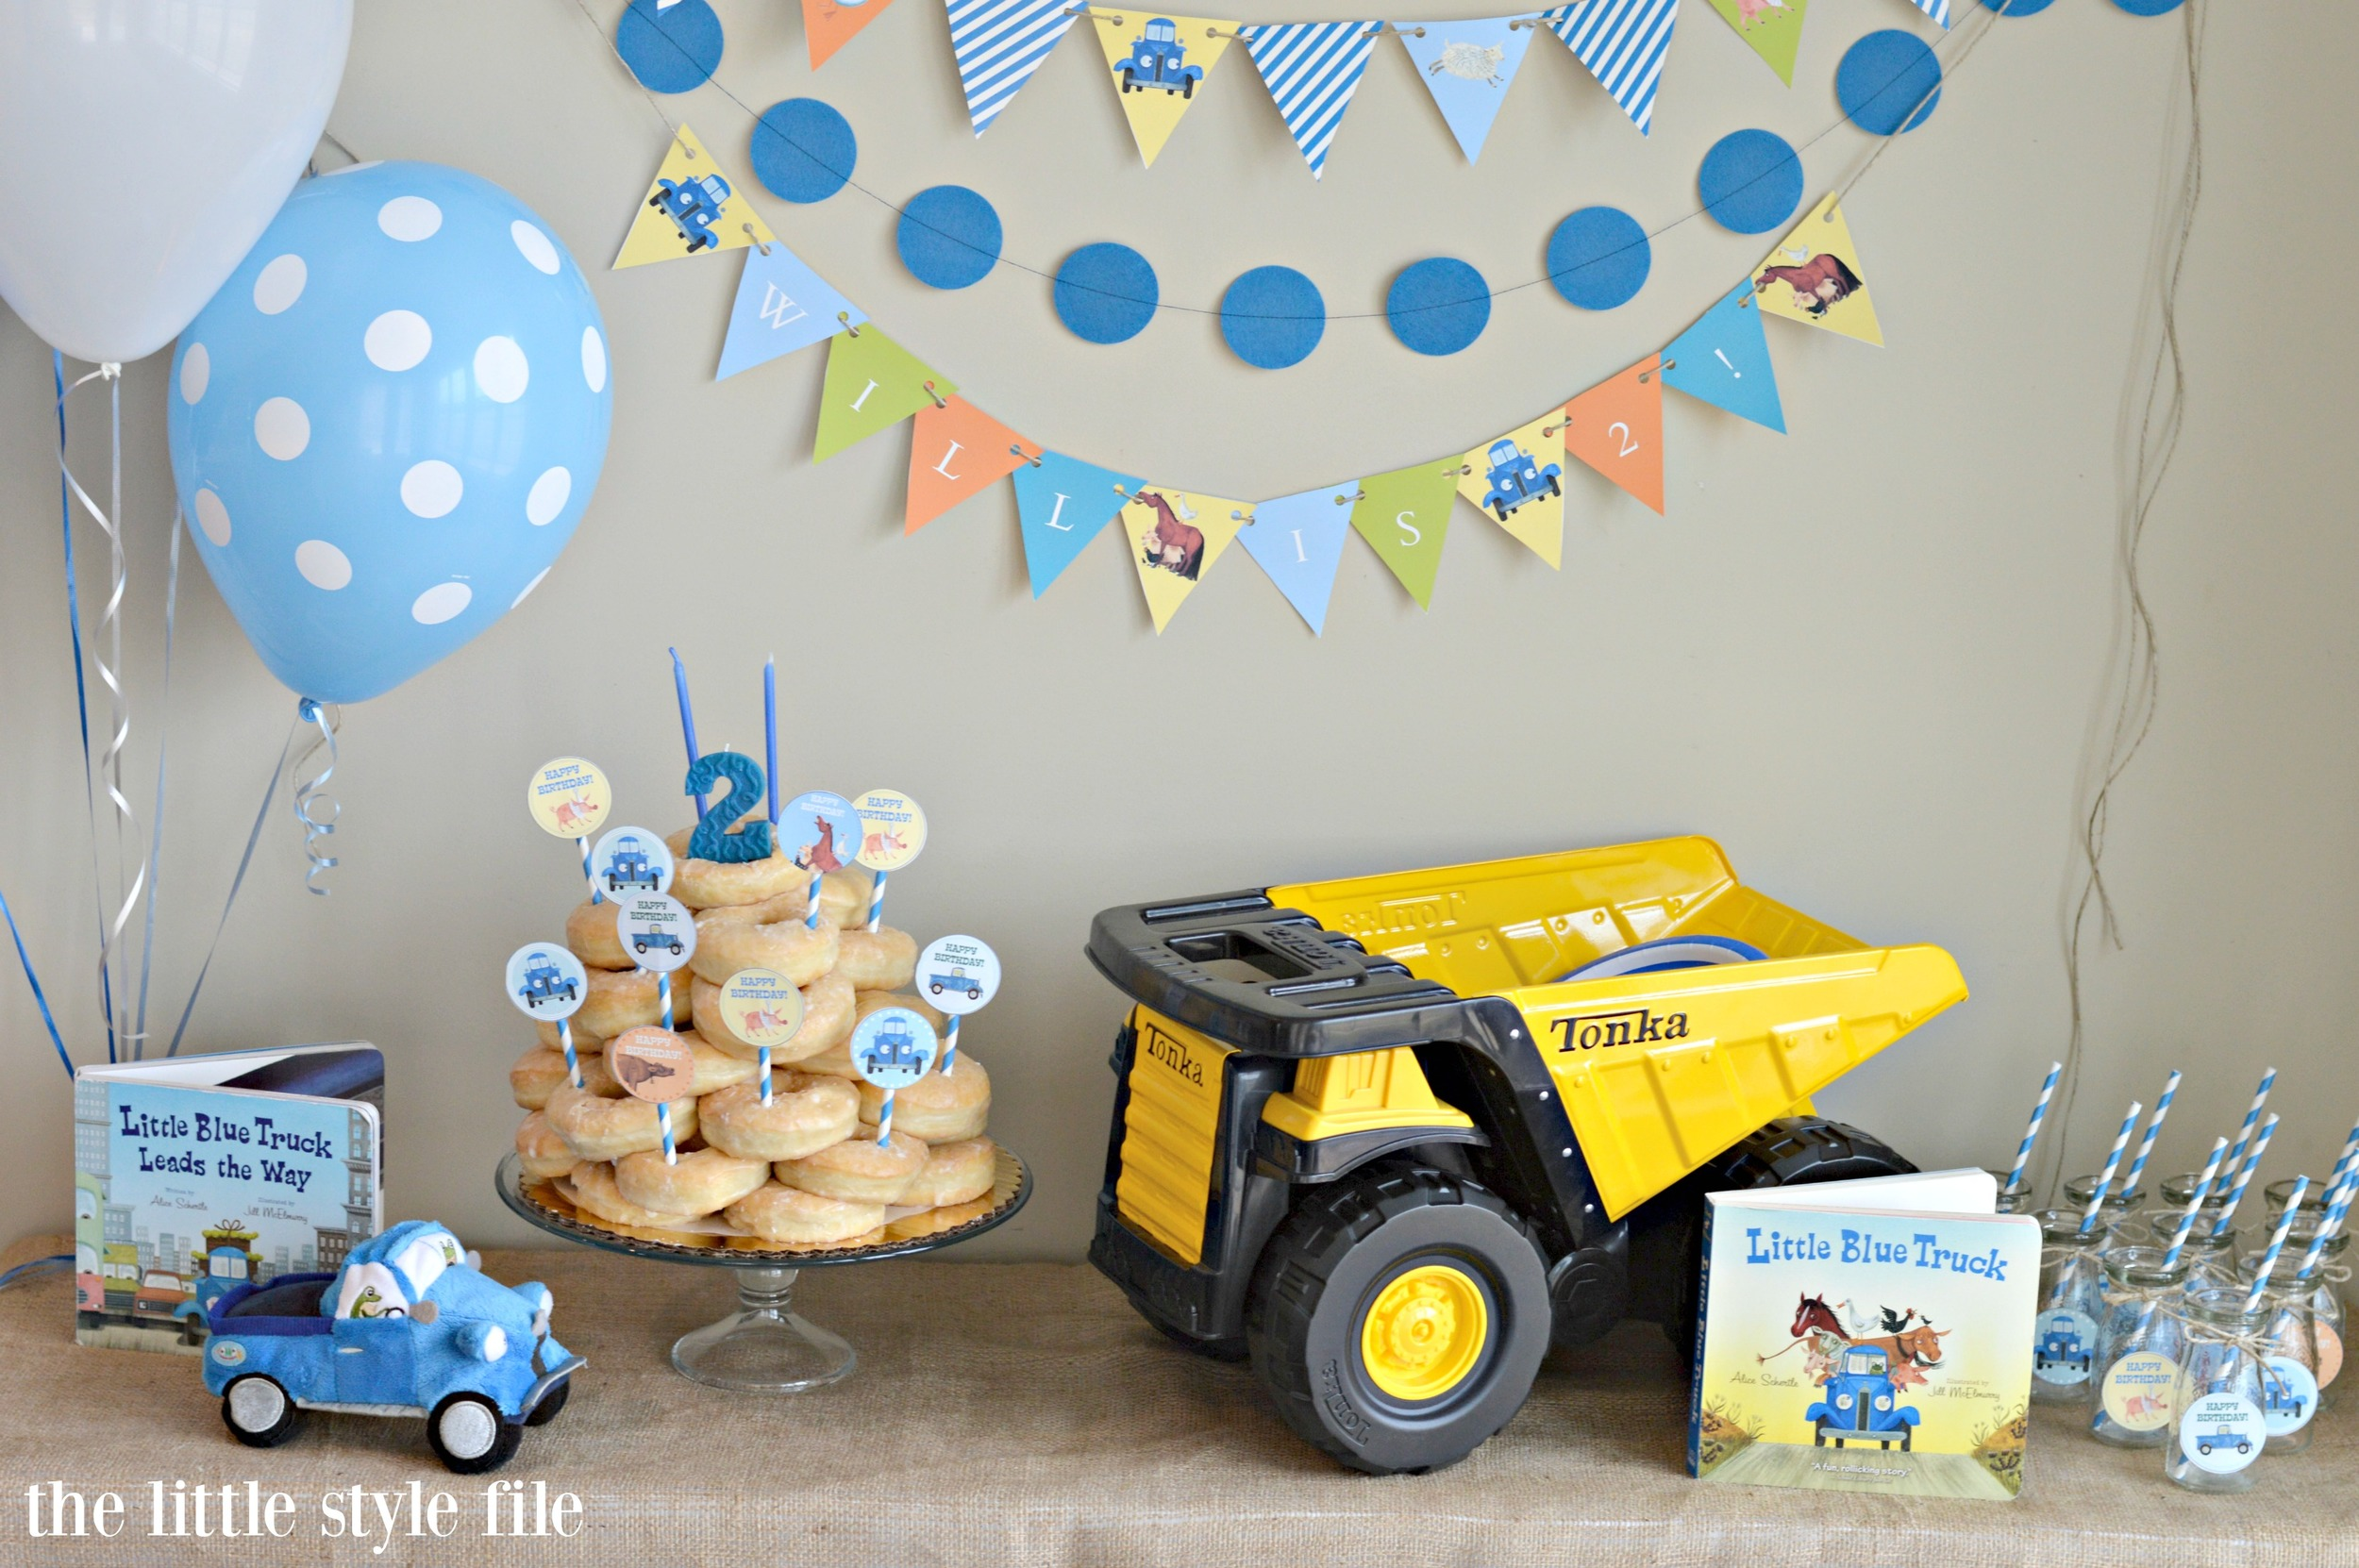 Little Blue Truck Birthday Party — The Little Style File